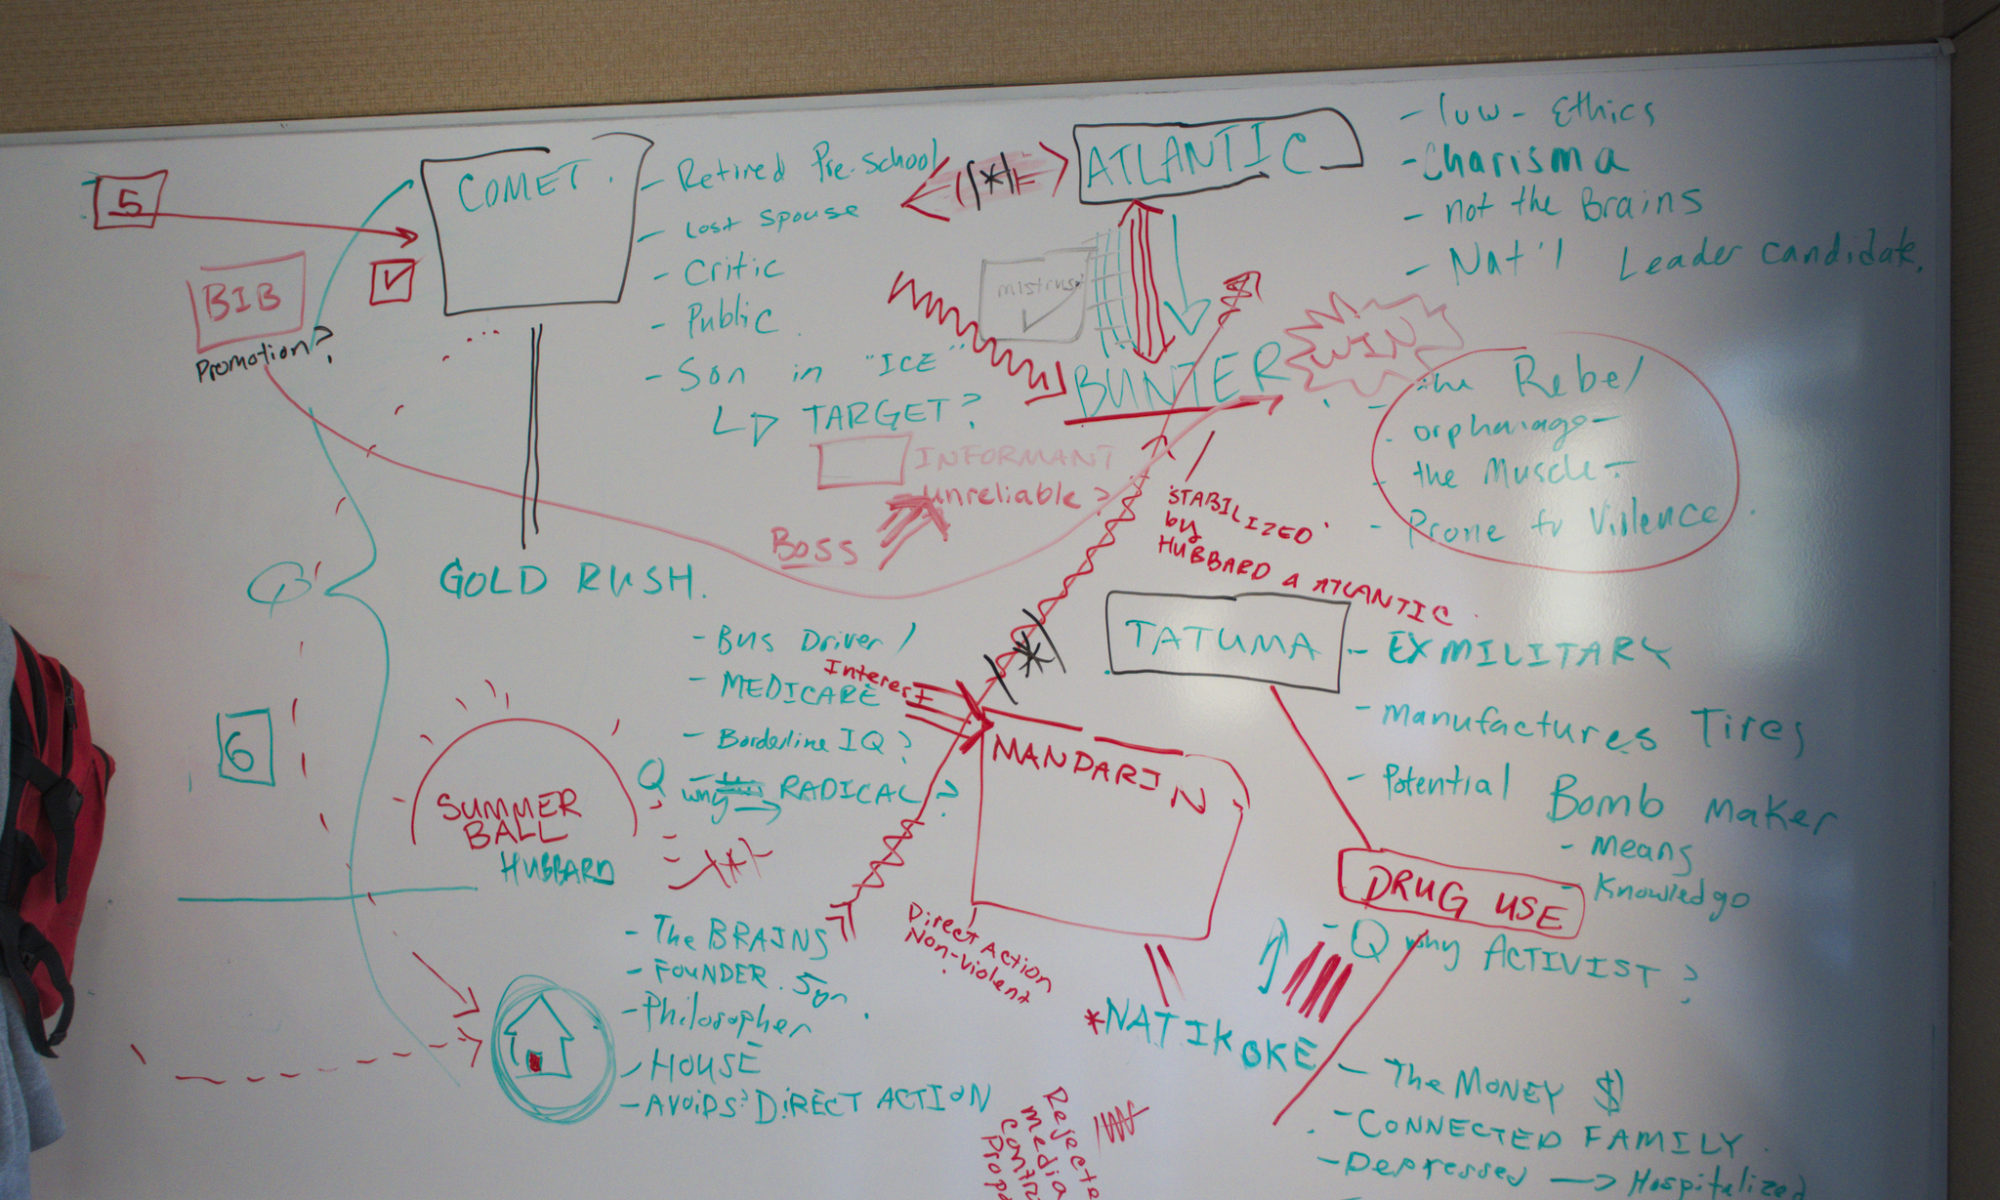 whiteboard scrawled with complex diagram mapping relationships between suspected agitators